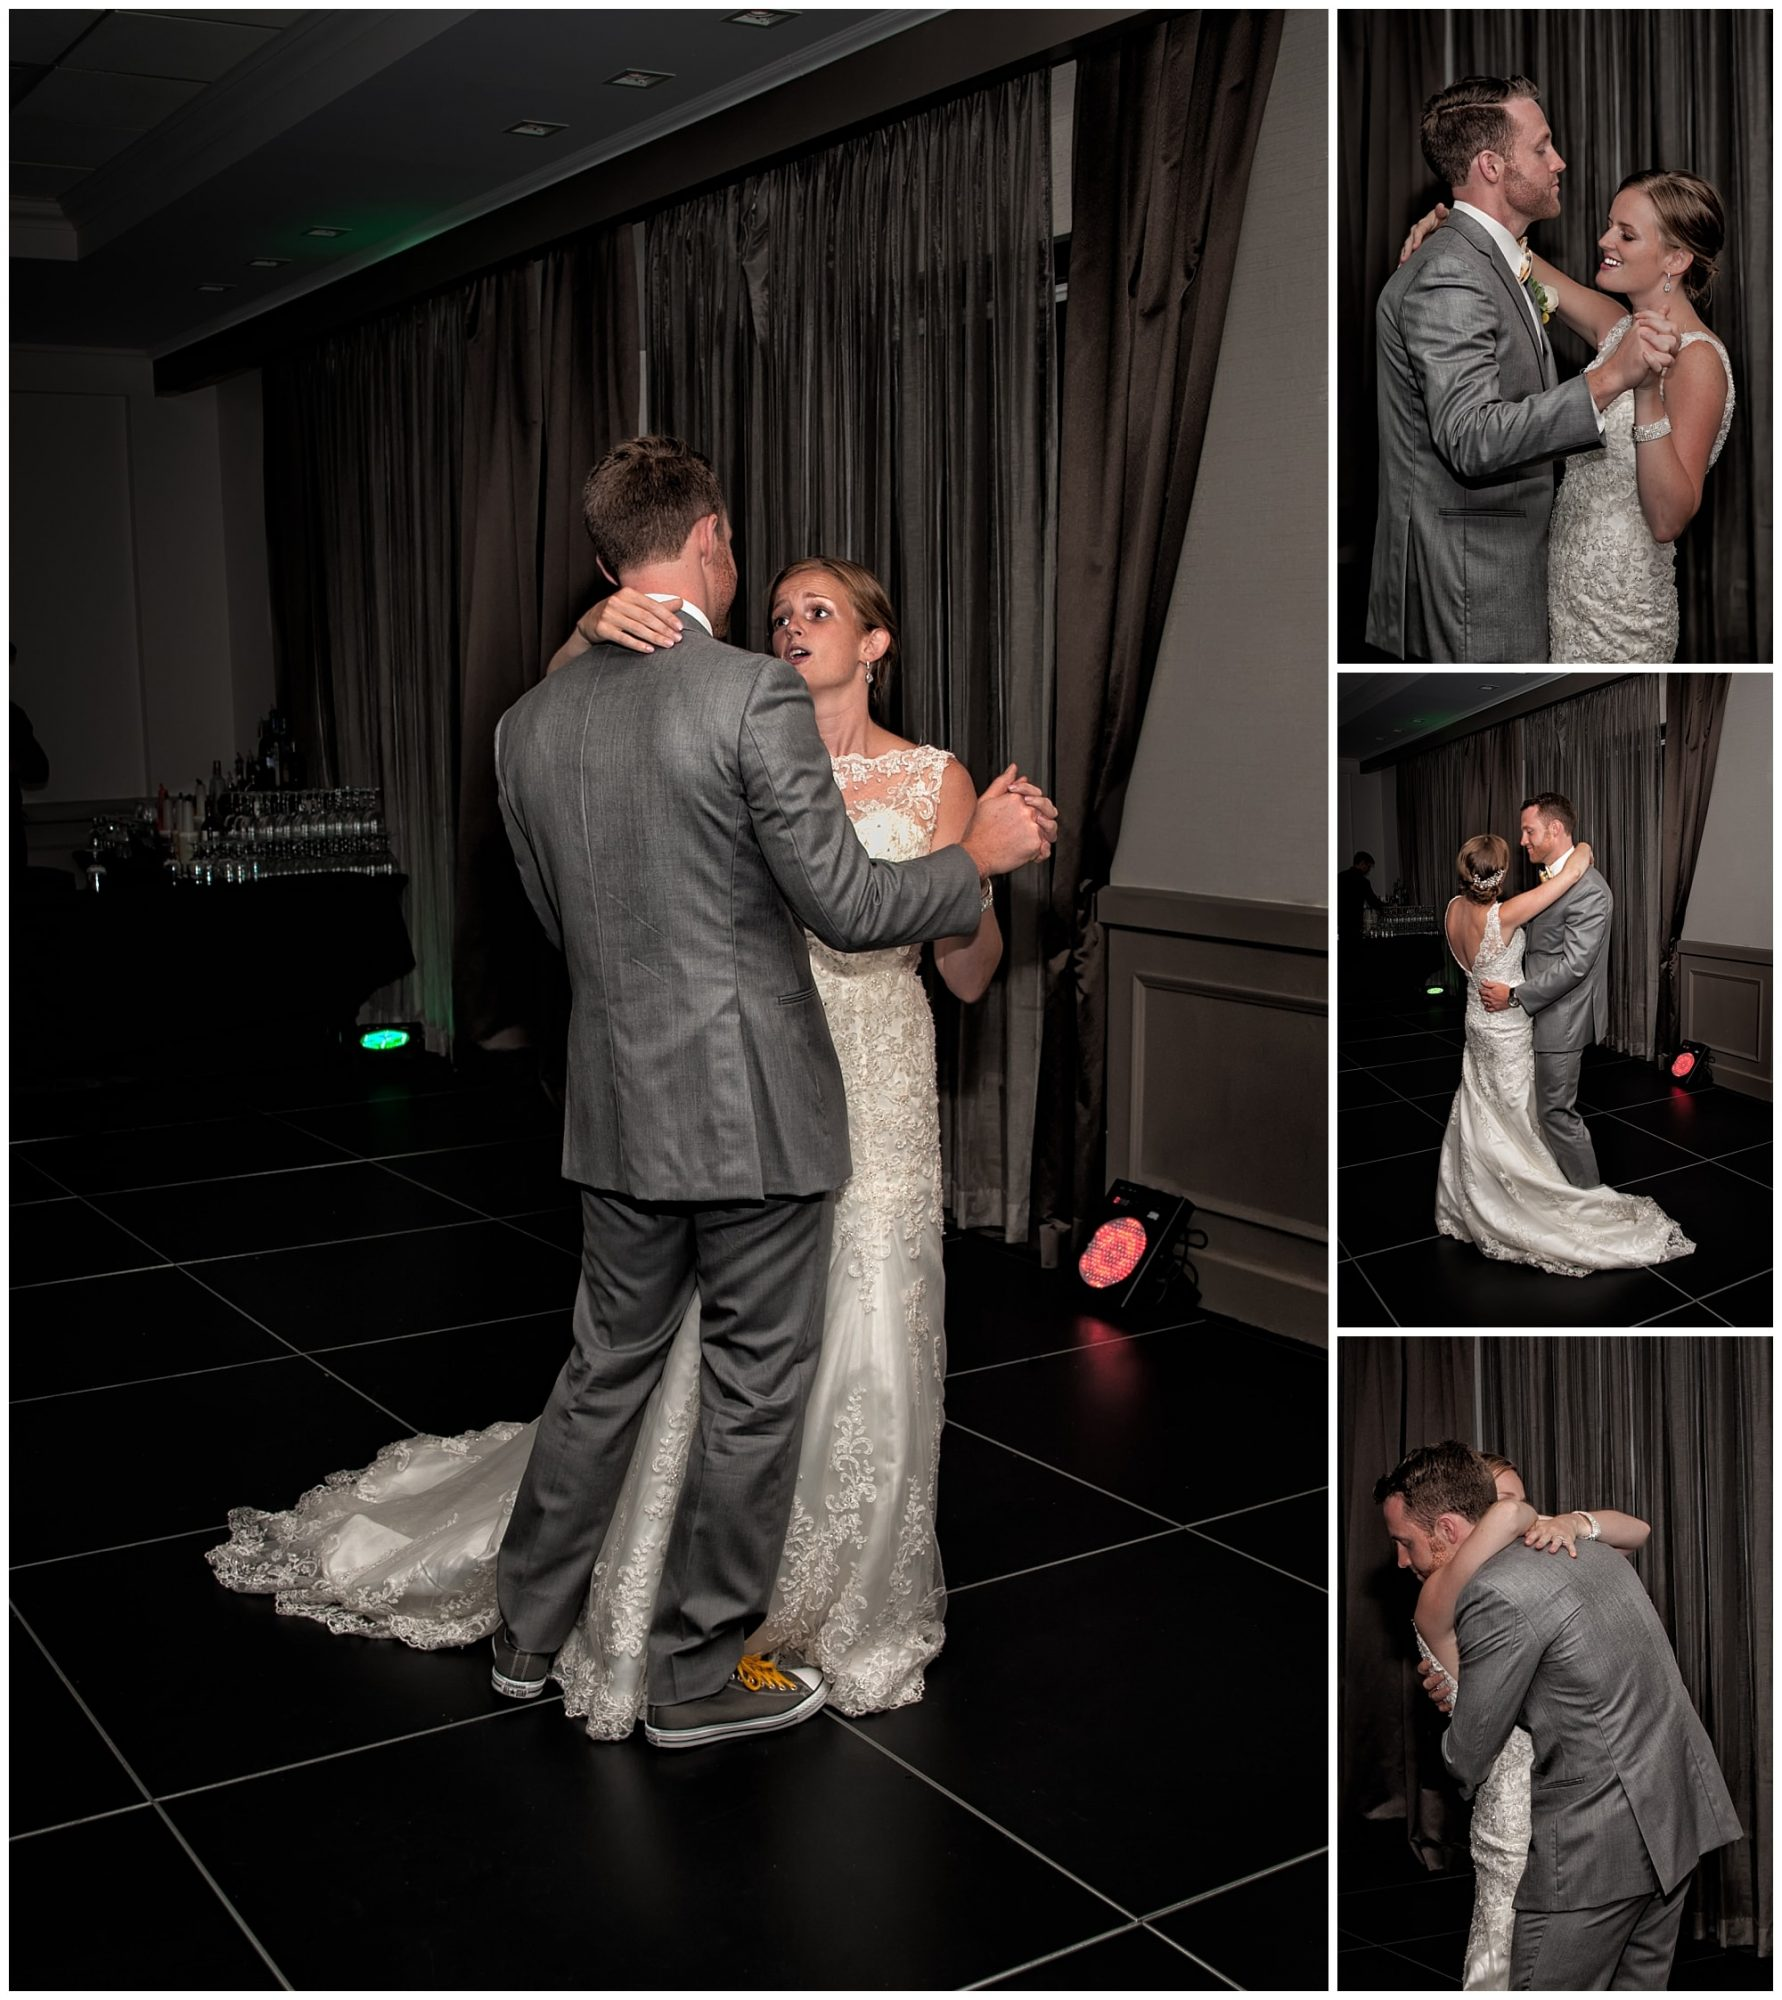 The bride and groom sing to each other during their first dance at their Prince George Hotel wedding.